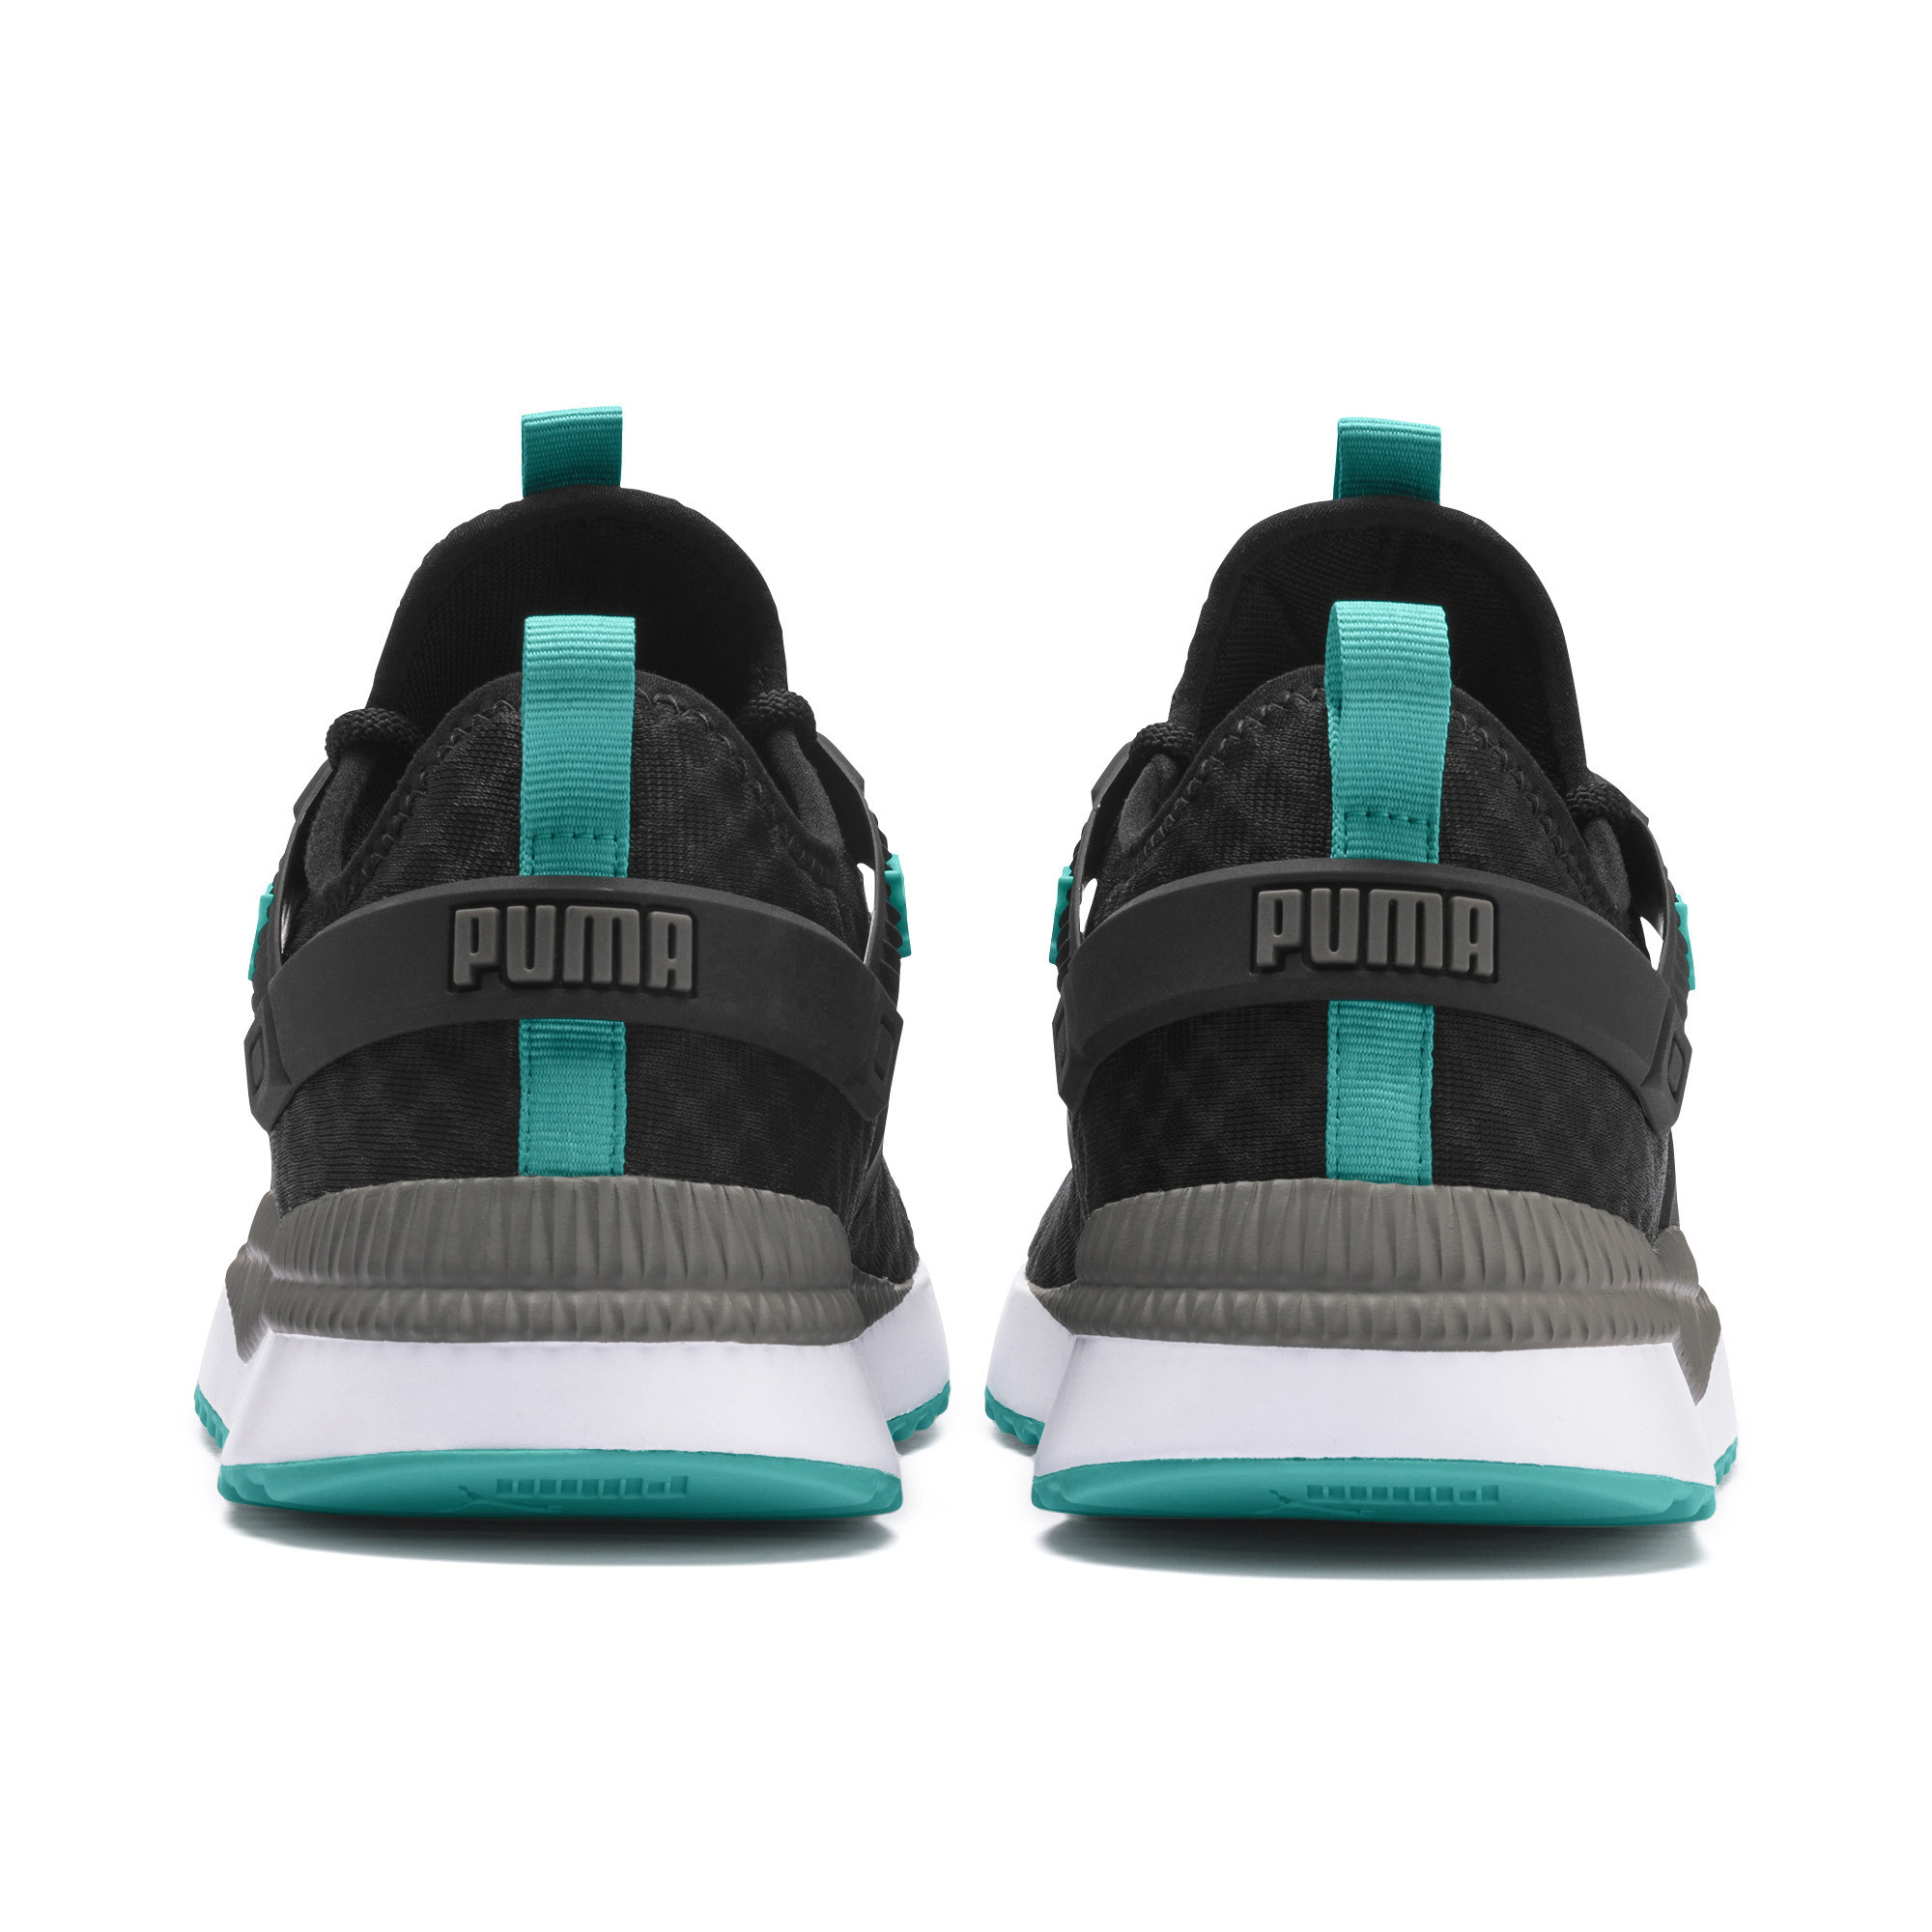 PUMA-Men-039-s-Pacer-Next-Excel-Core-Sneakers thumbnail 3